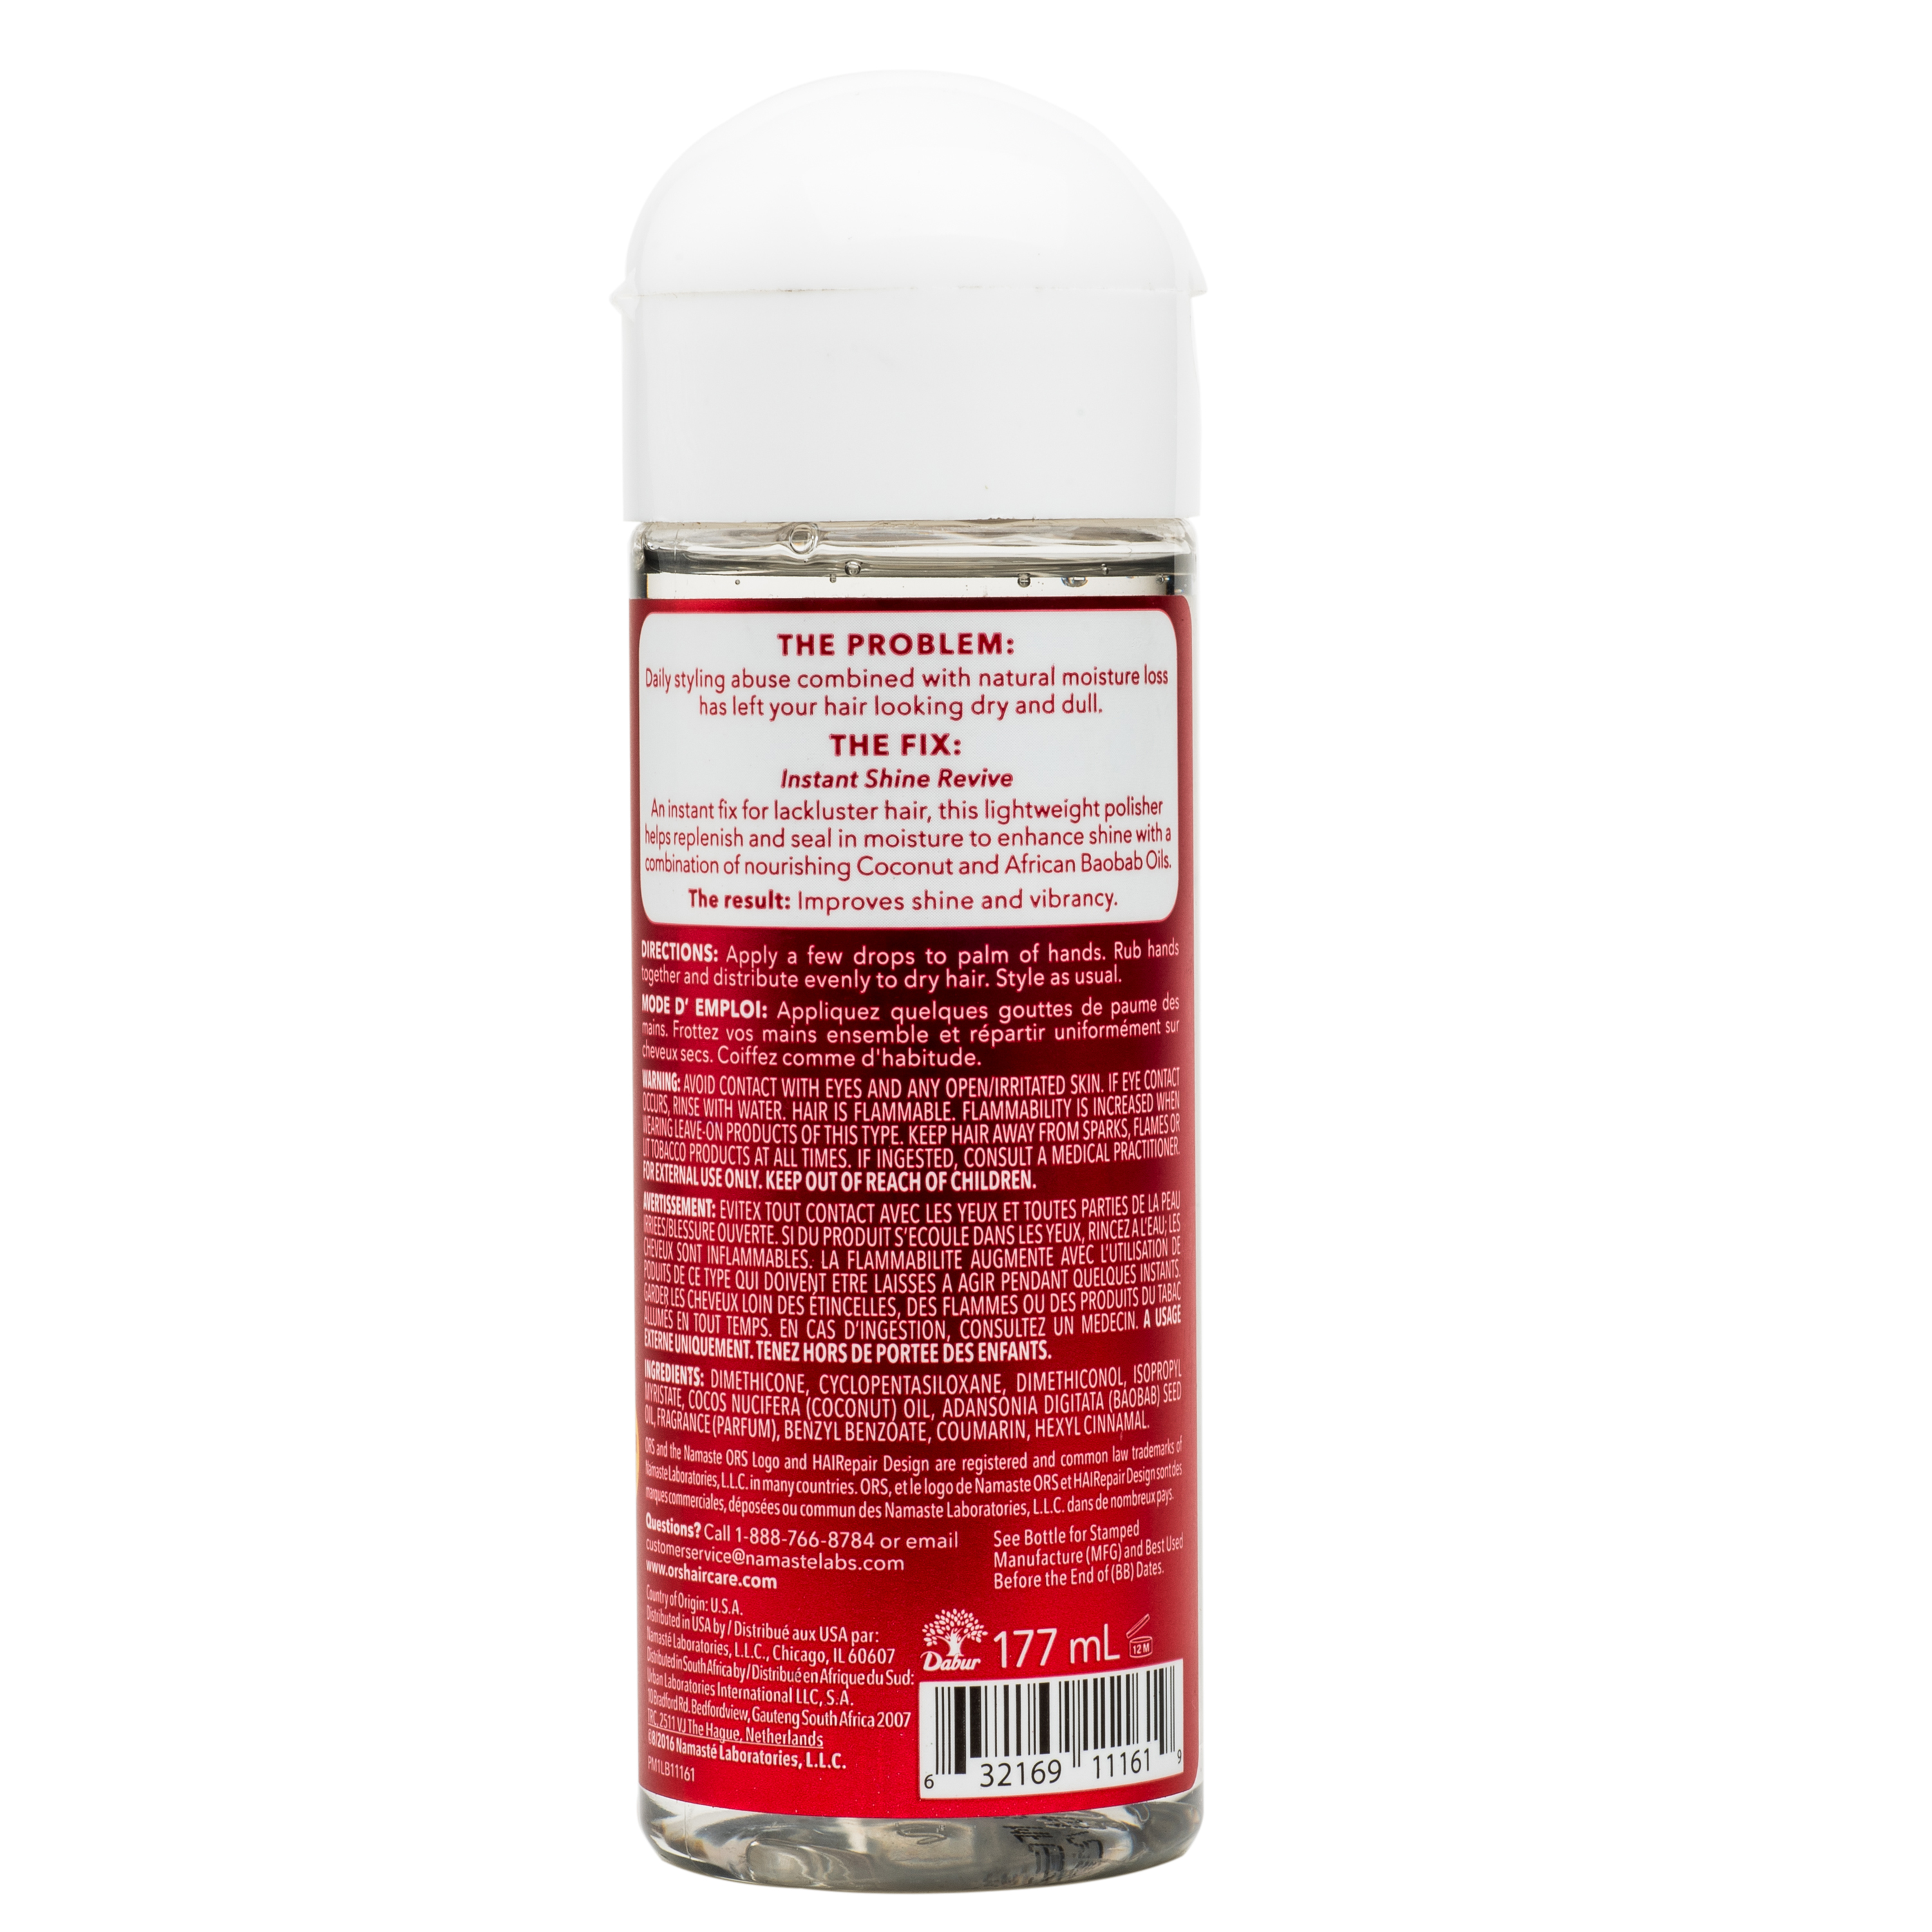 Marque H Et H ors hairepair coconut oil & baobab hair polisher 6 oz